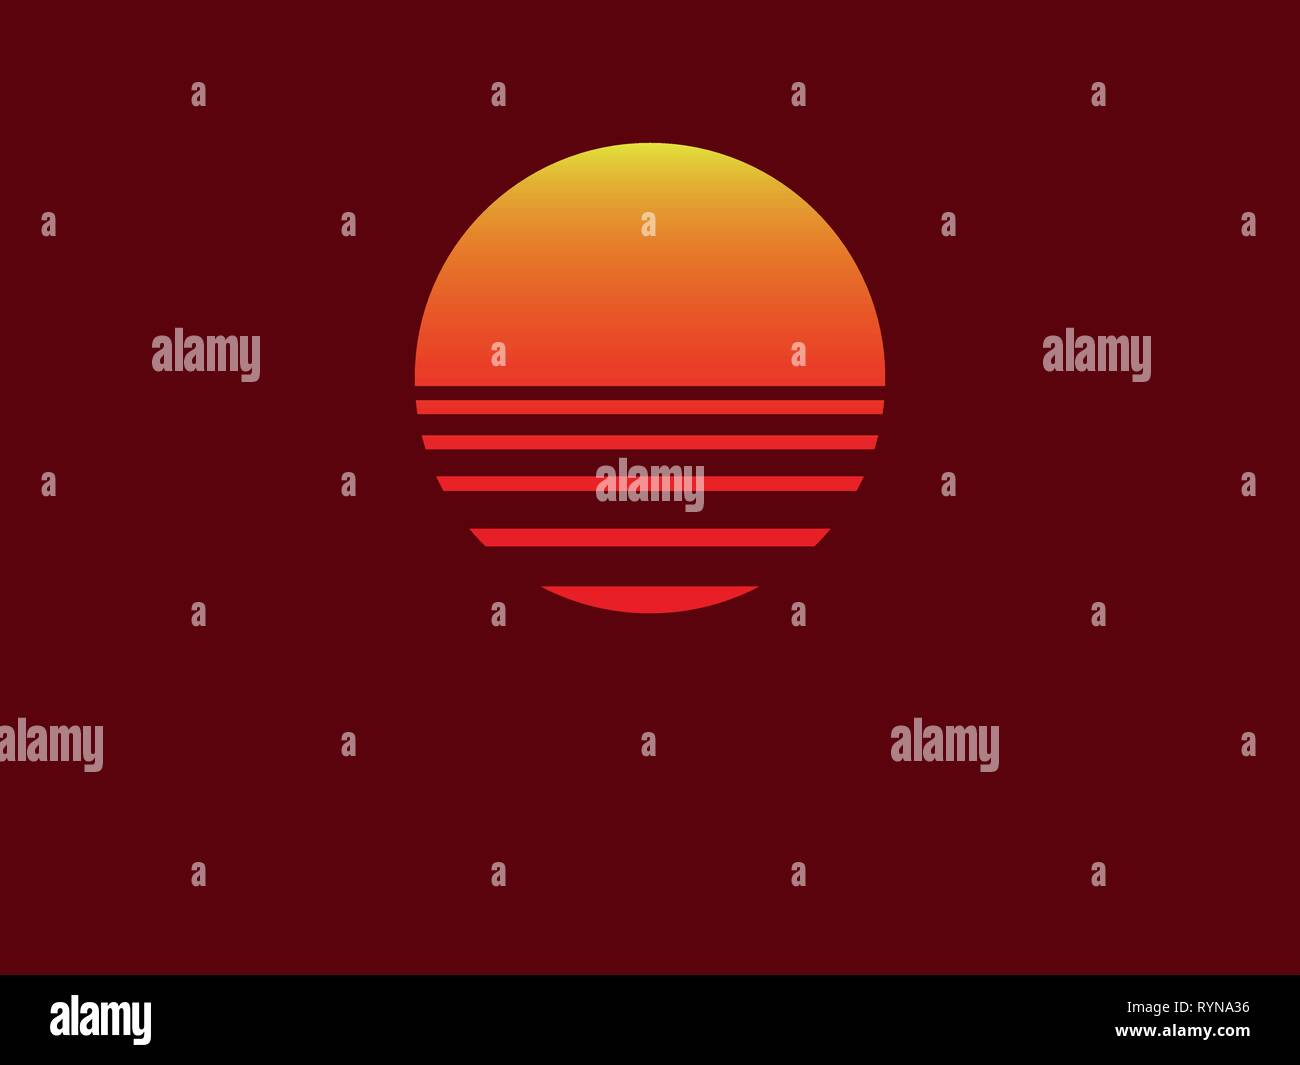 Minimalistic vector illustration with sunset and red background - Stock Vector